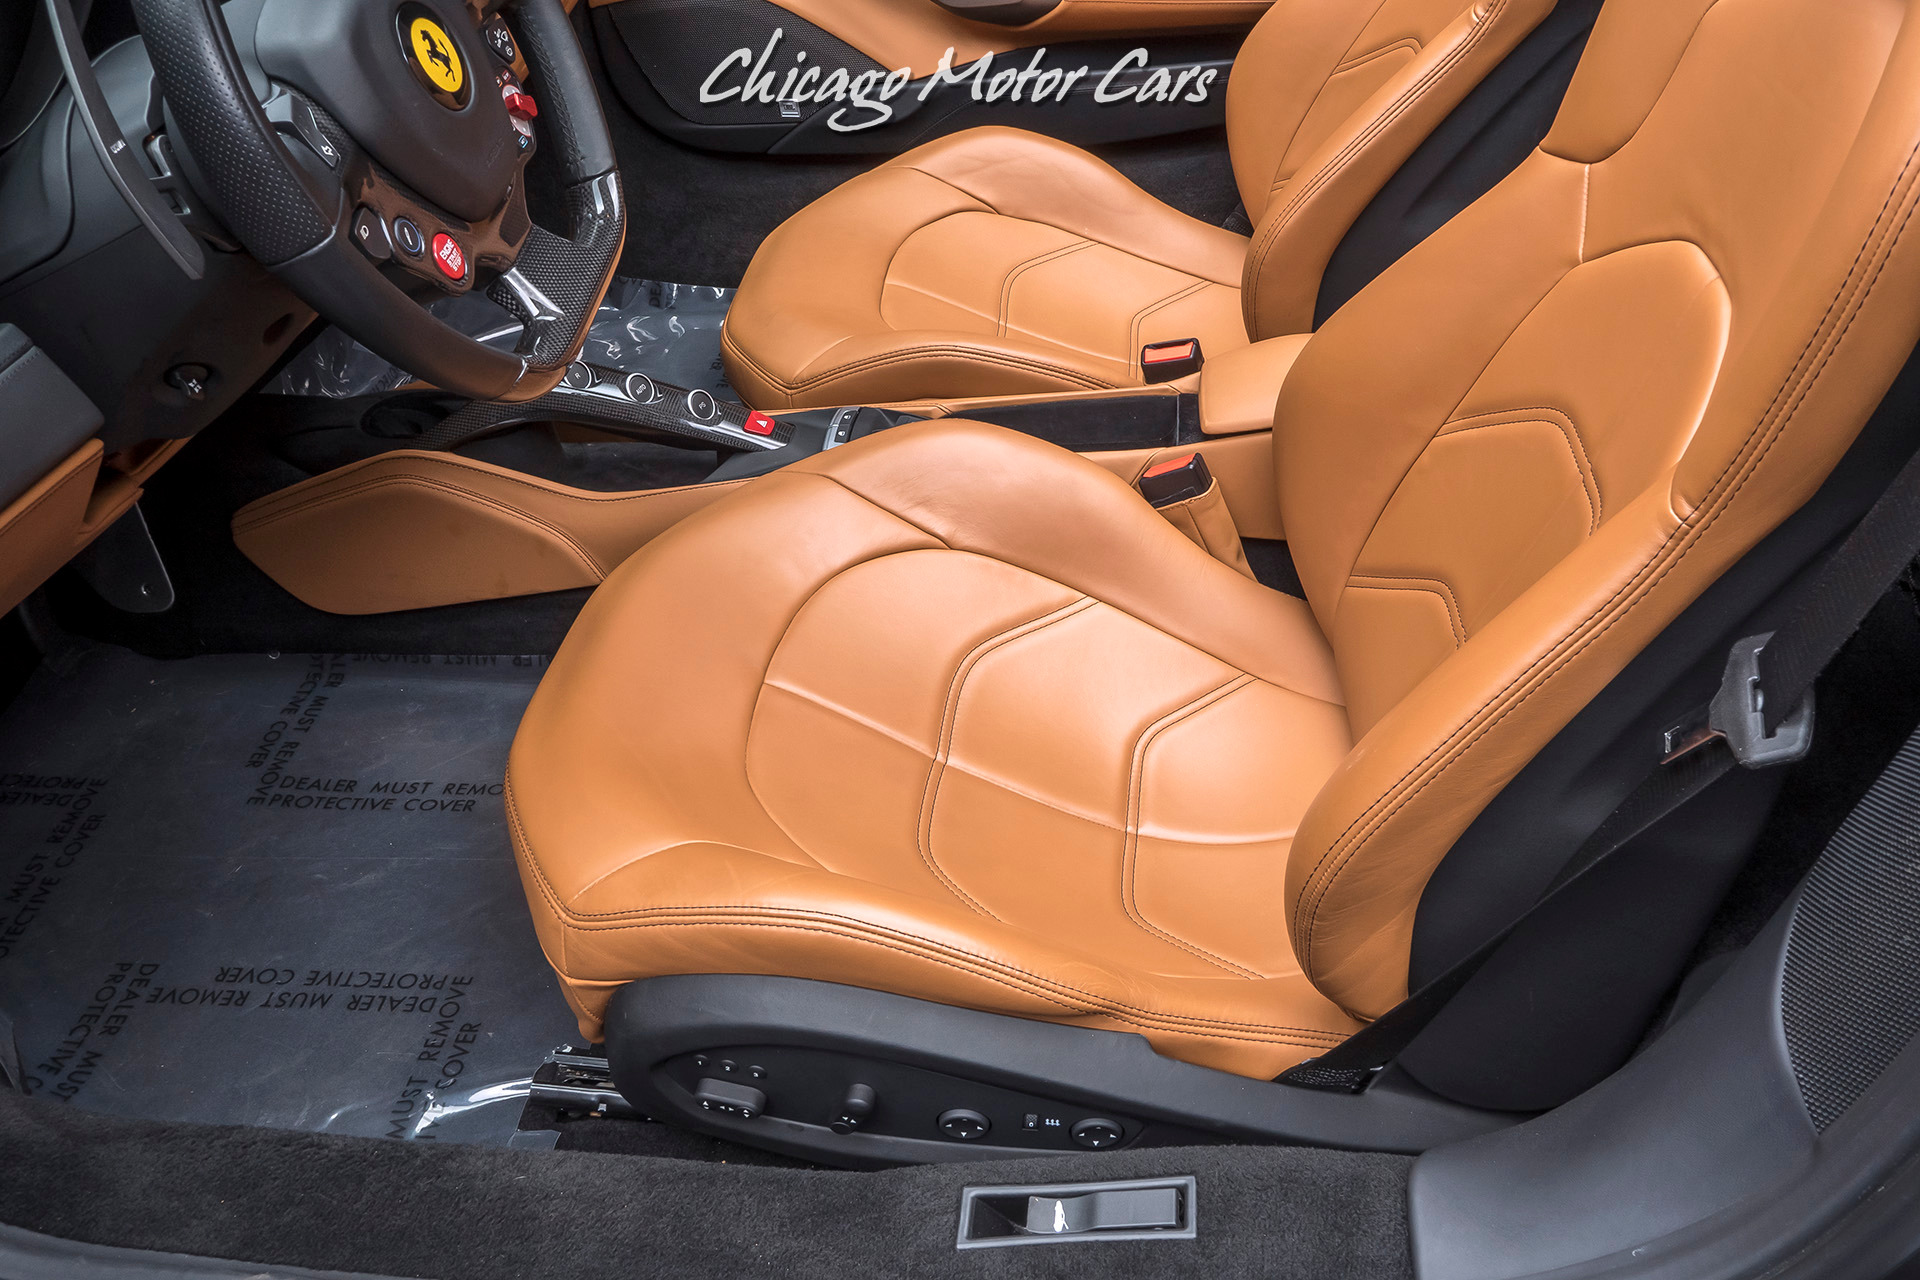 Used-2016-Ferrari-488-Spider-LOADED-THOUSAND-in-FACTORY-OPTIONS